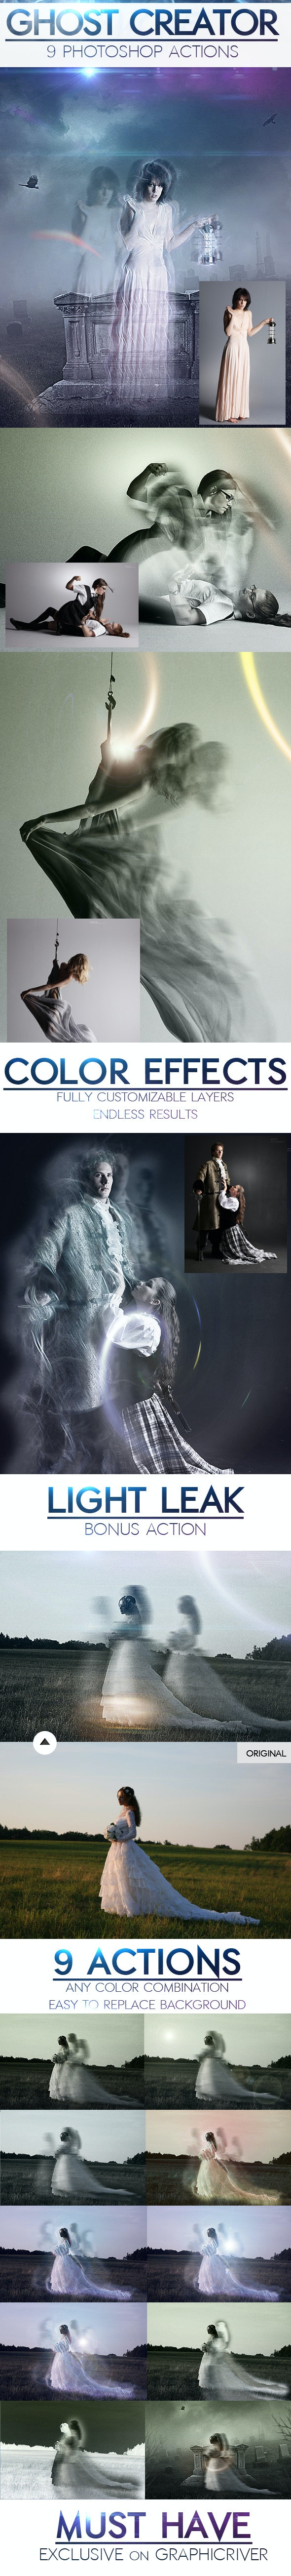 Ghost Creepy Photo Effects Photoshop Actions - Photo Effects Actions